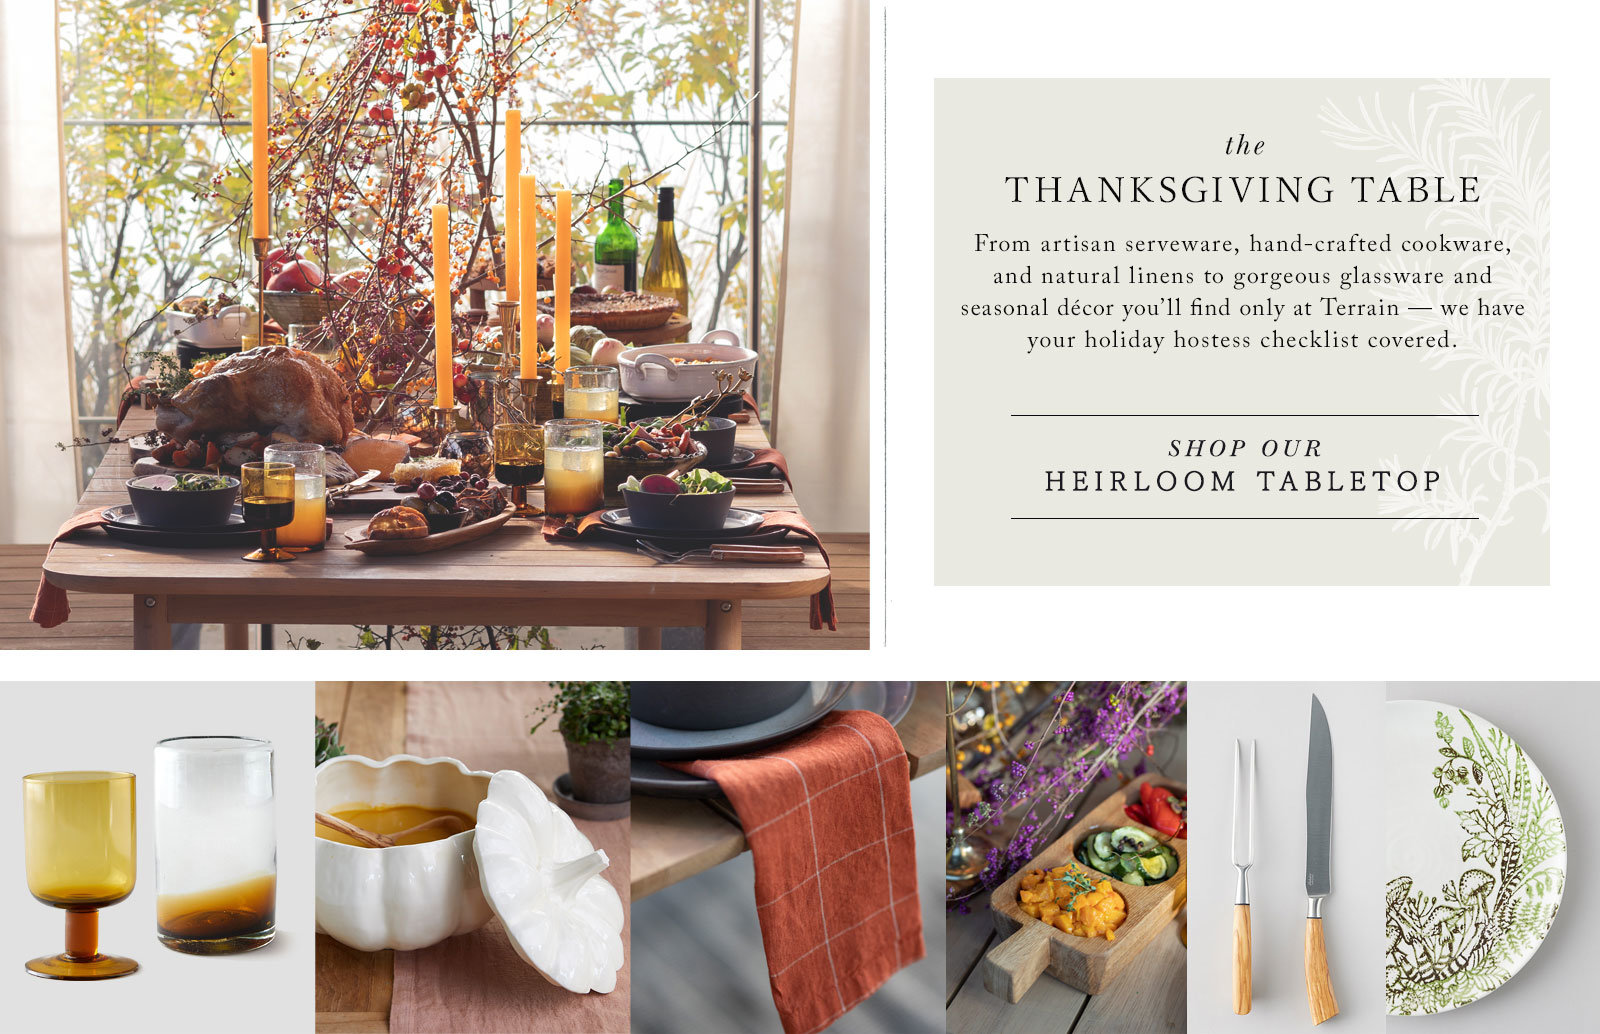 The Thanksgiving Table | From heirloom serveware, durable cookware and natural linens to gorgeous glassware and seasonal décor you'll find only at Terrain — we have your holiday hostess checklist covered.